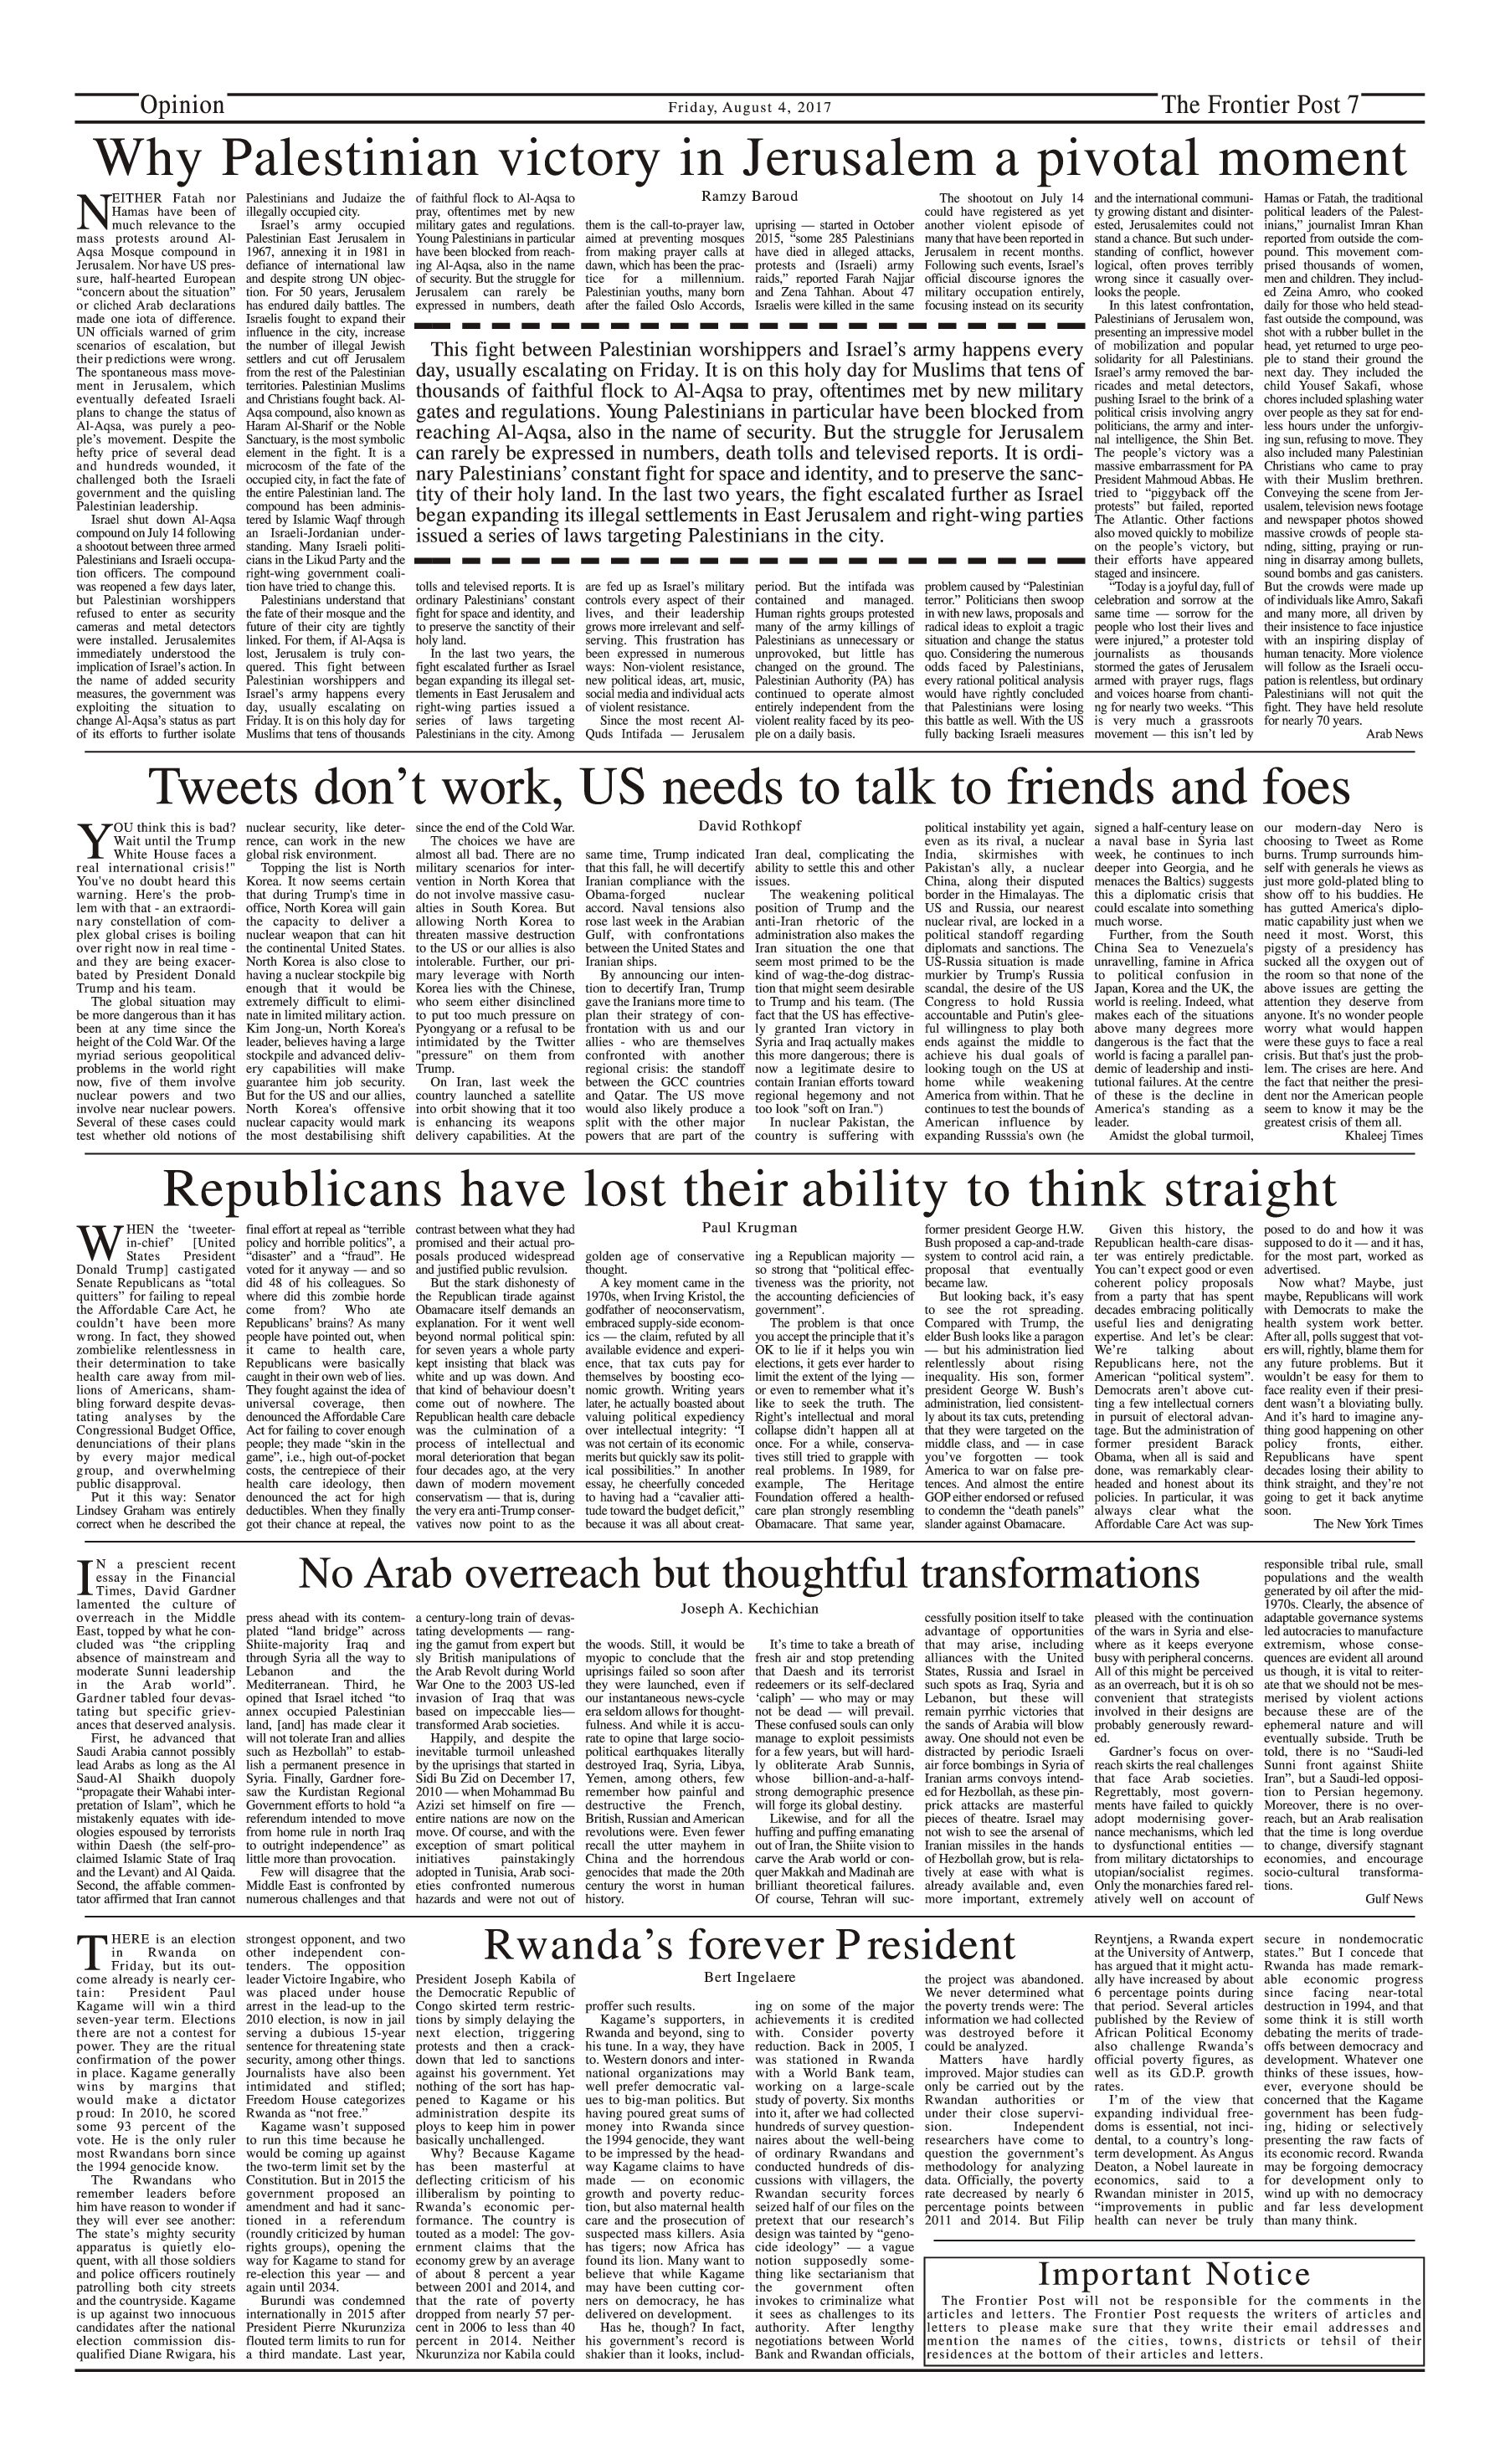 Opinion Page 04